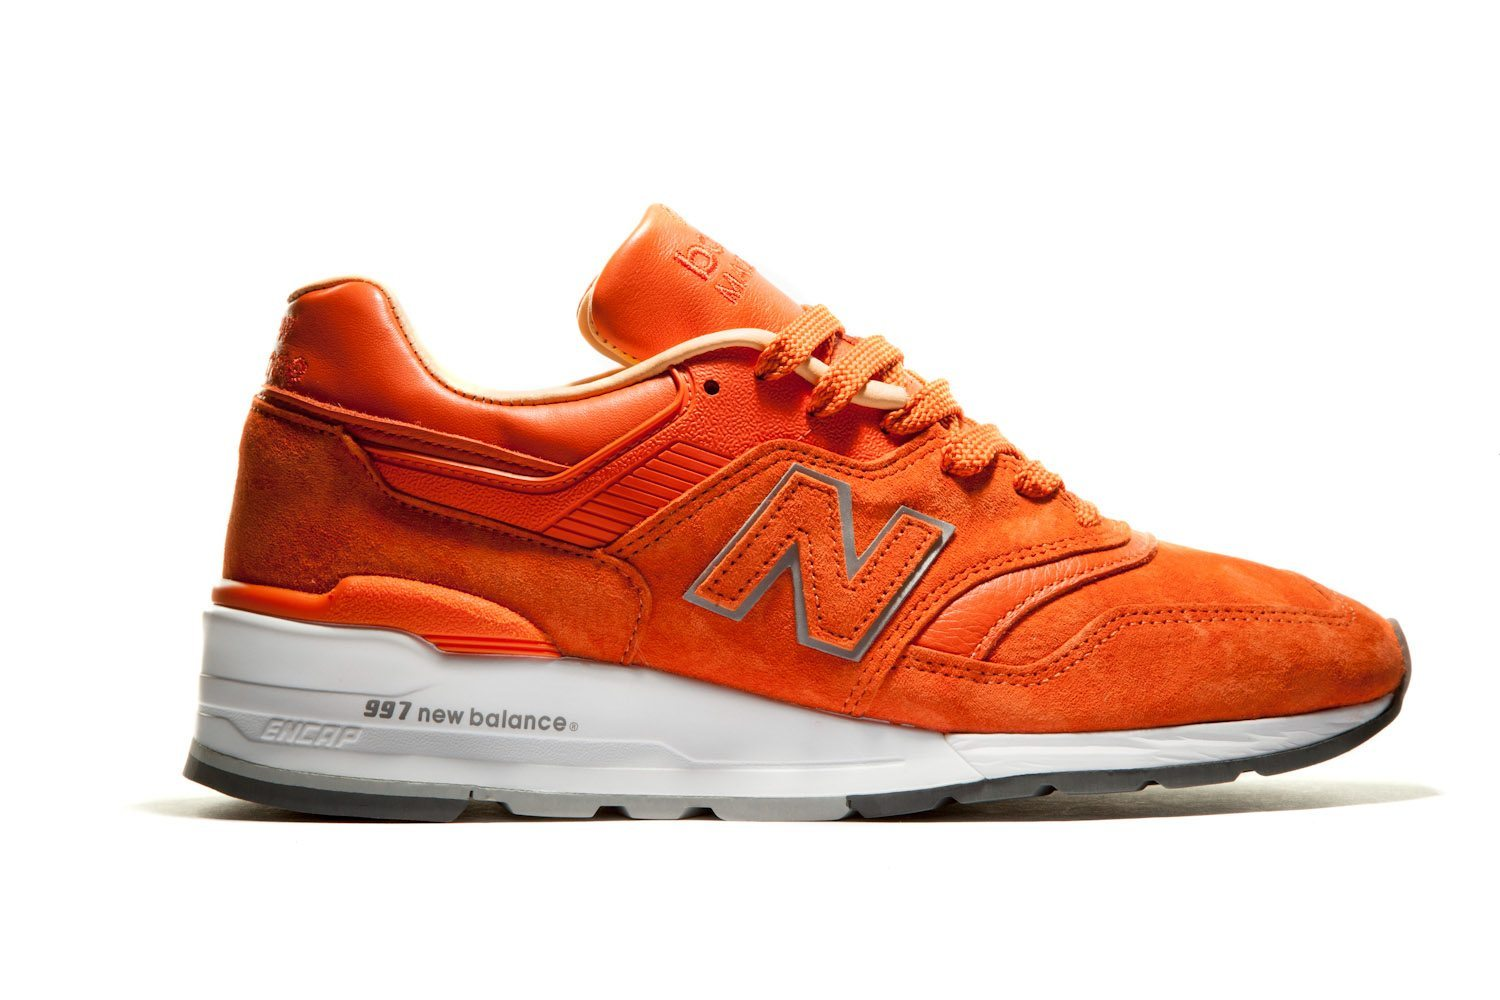 Concepts x New Balance 997 Luxury Goods 2